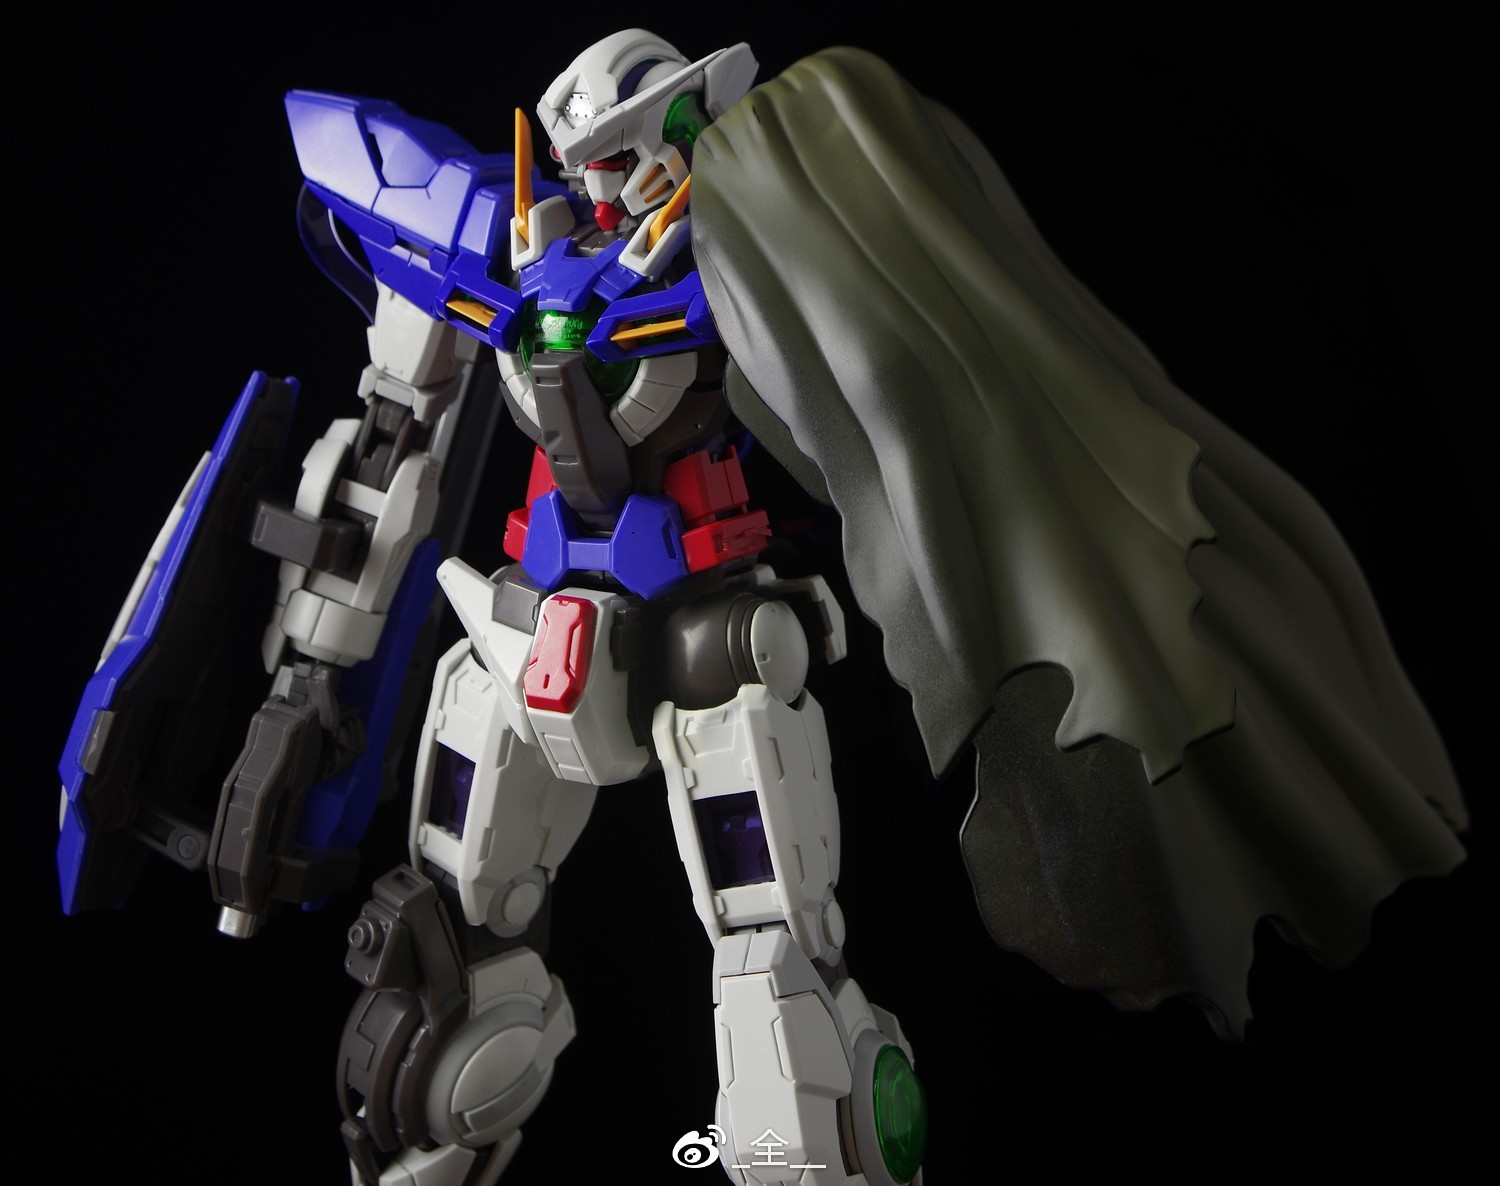 S269_mg_exia_led_hobby_star_inask_077.jpg